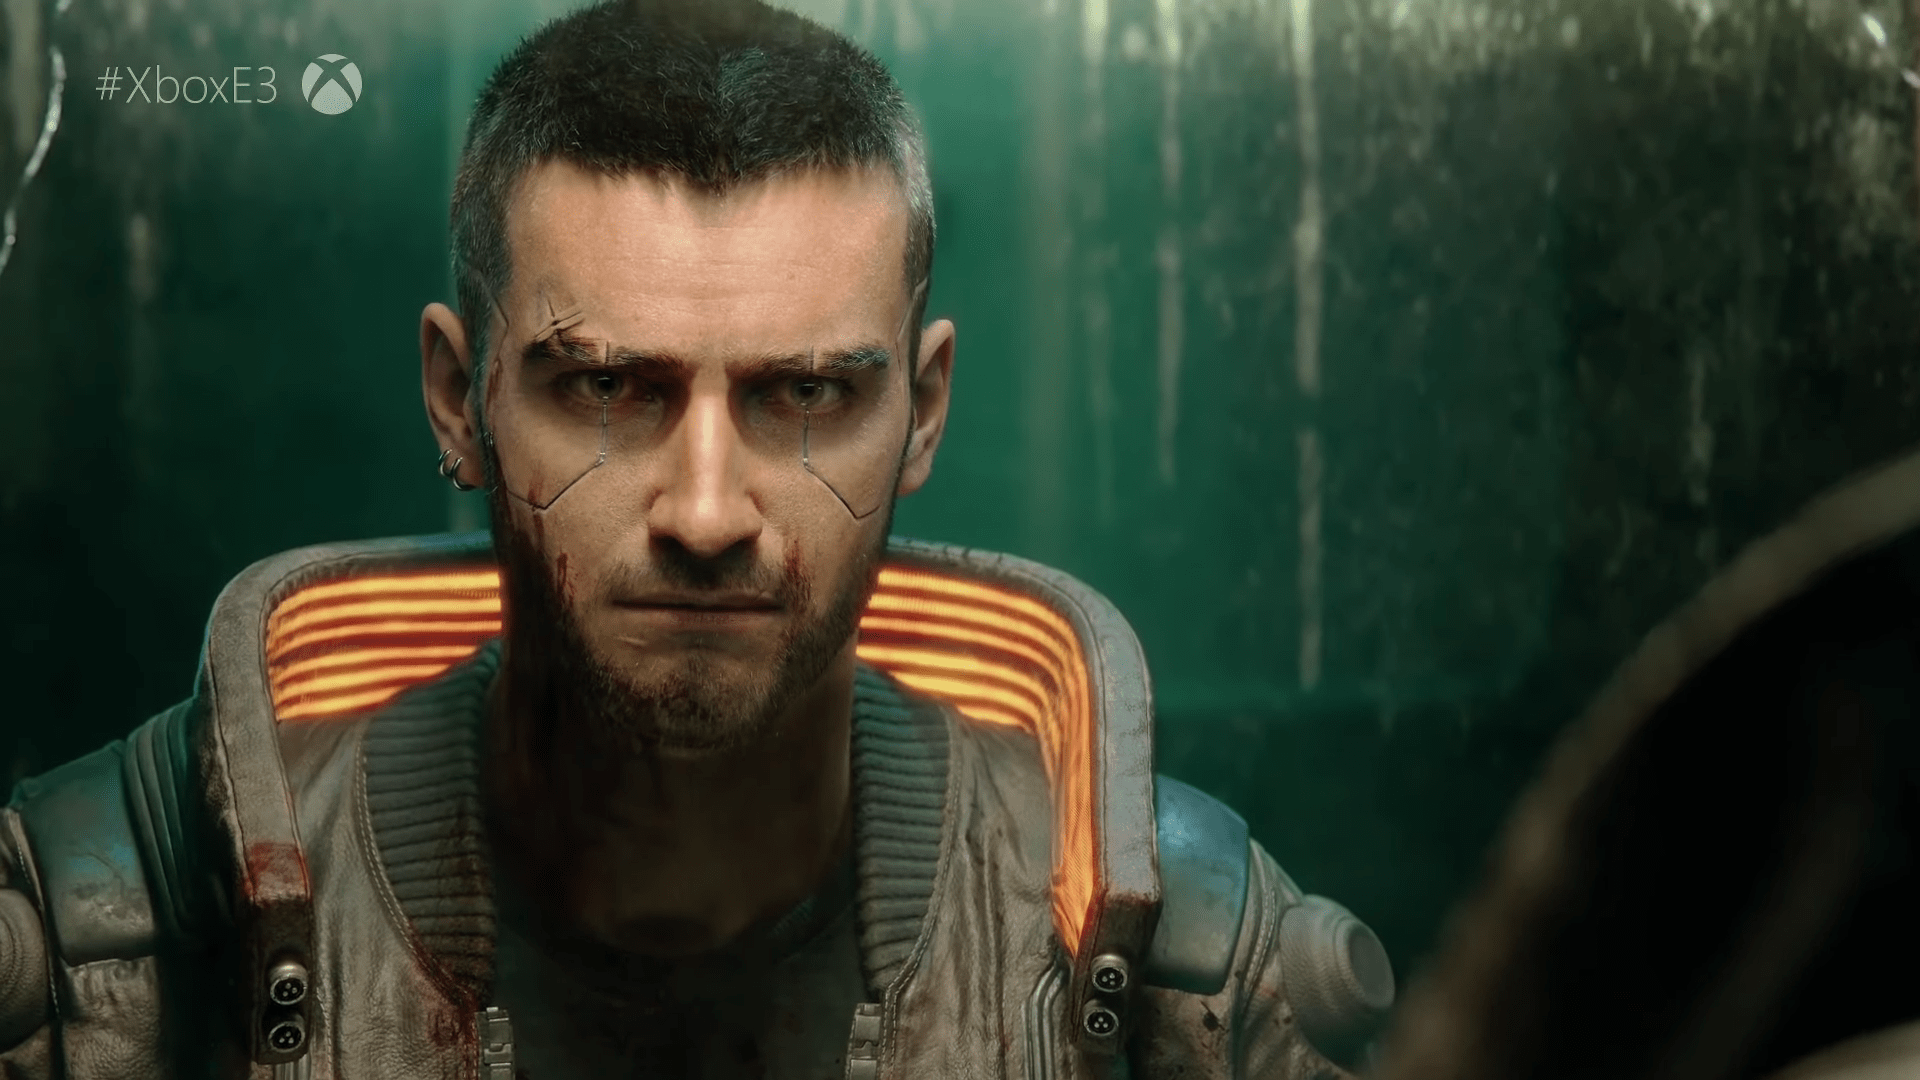 More Details Revealed About Keanu Reeves' Character in CD Projekt Red's Cyberpunk 2077